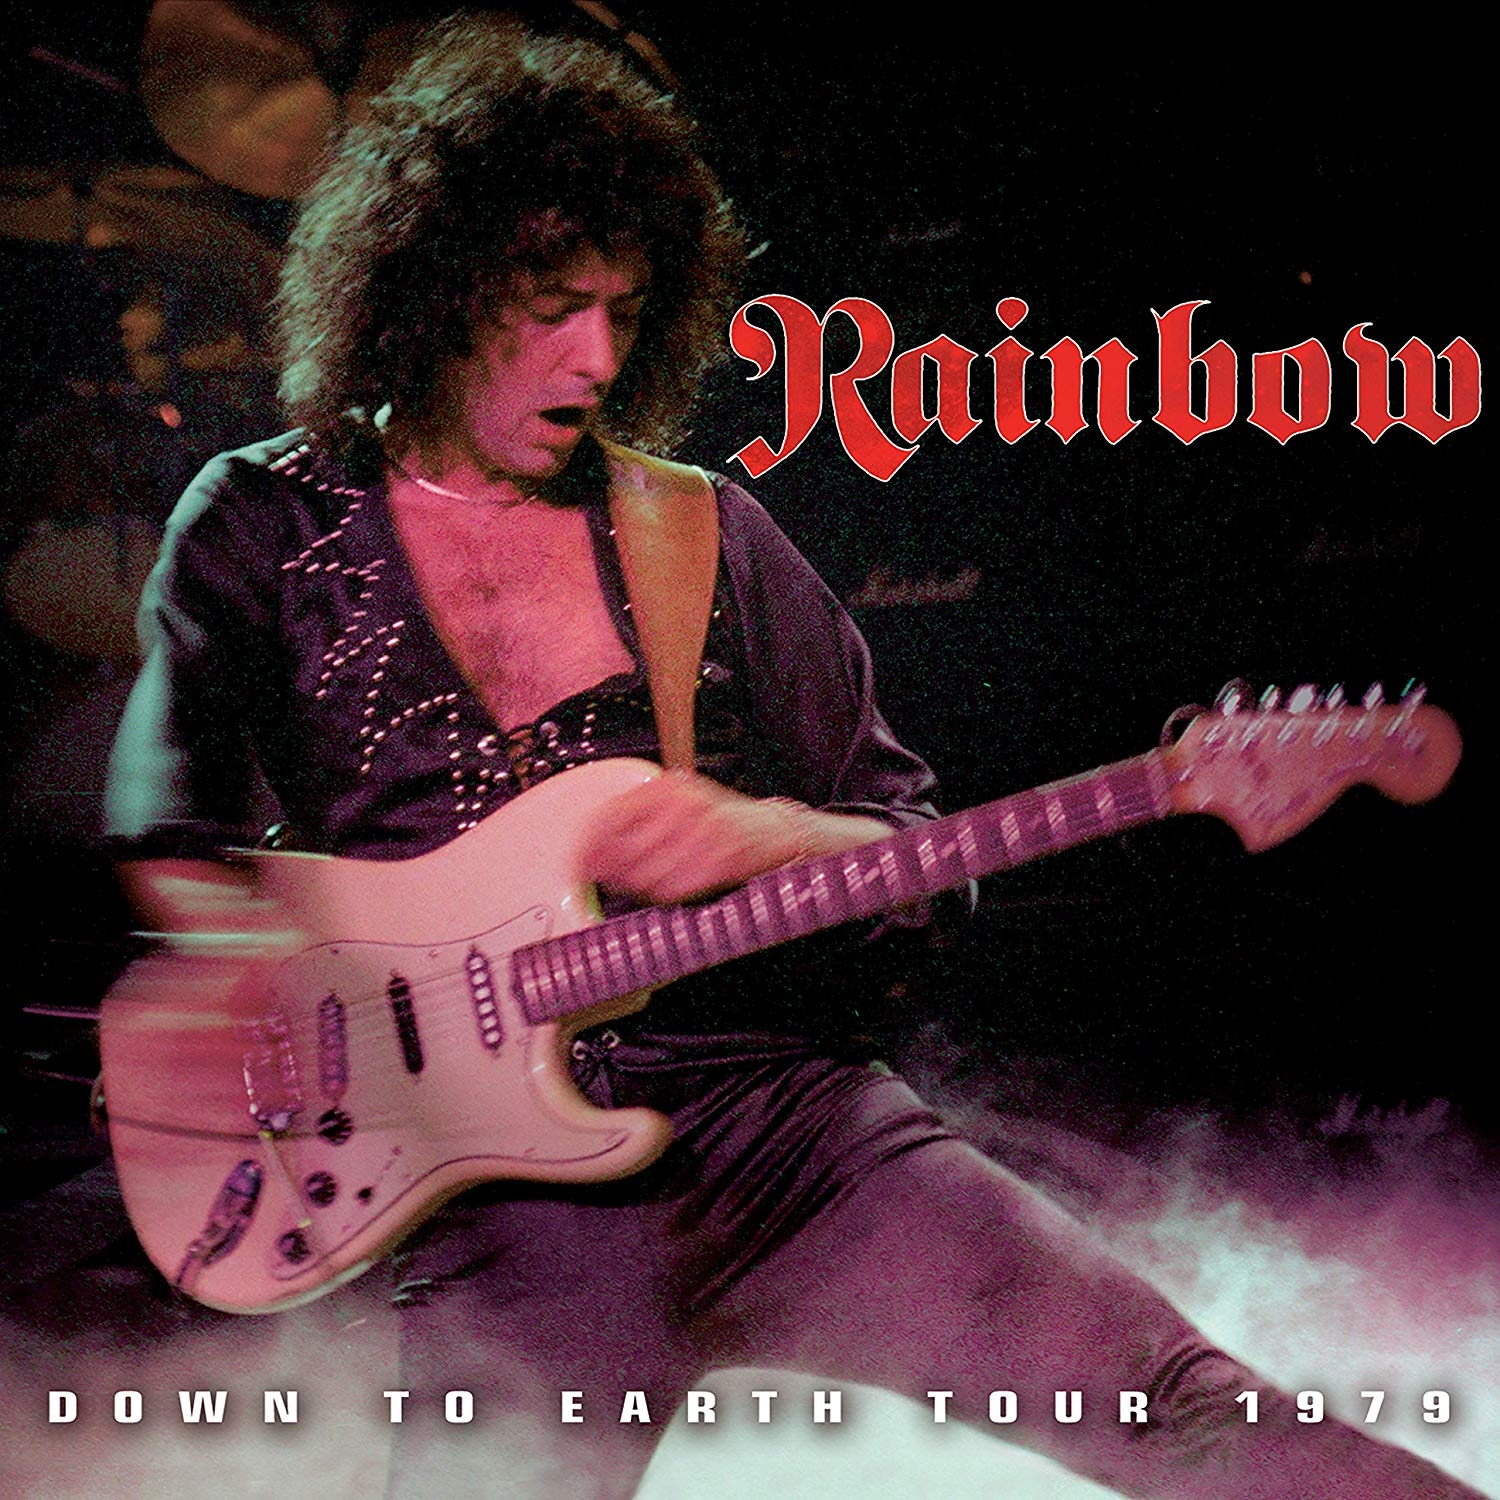 The Down To Earth Tour 1979 Box Set 3CD